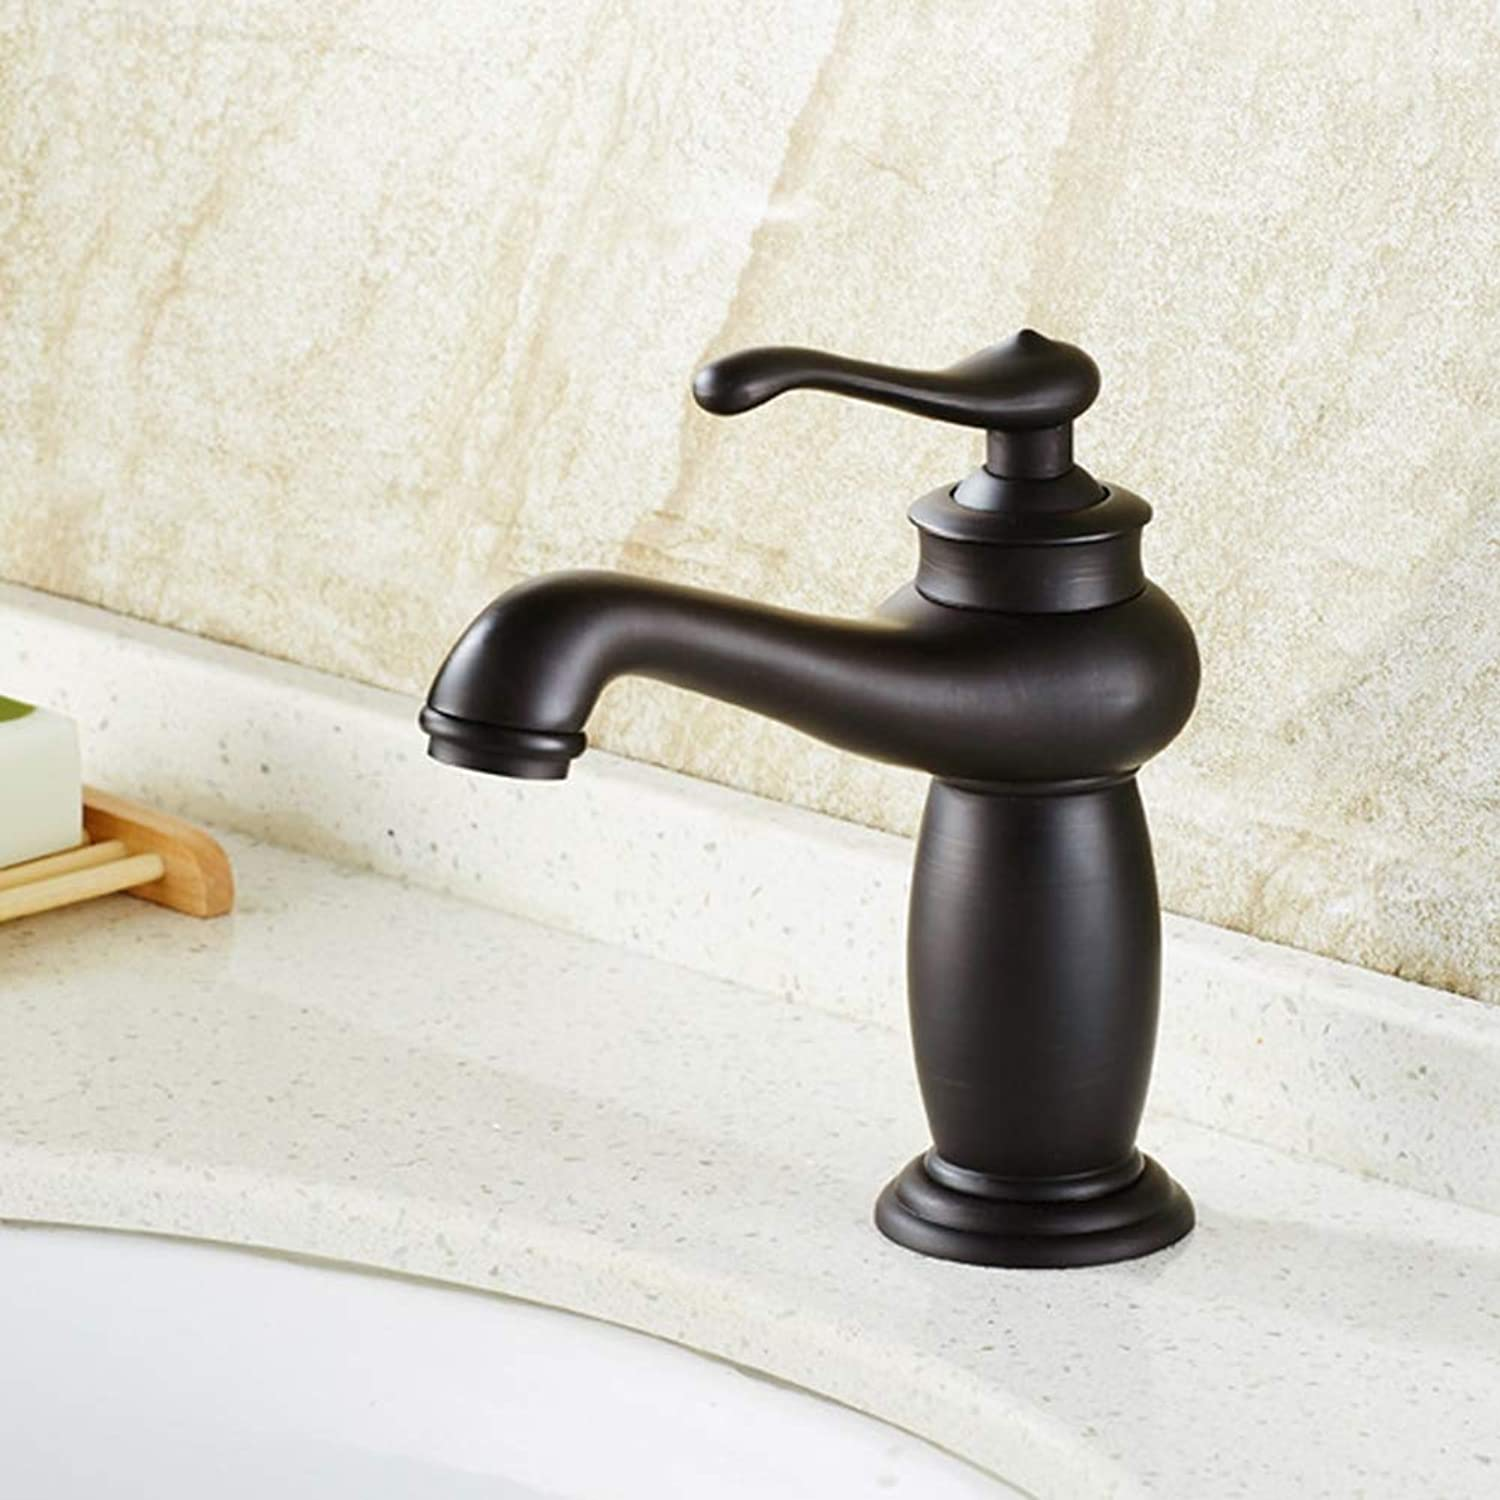 BYGenMai Bathroom Sink Faucet Single Handle One Hole in Oil-rubbed Bronze Cold Hot Water Black Contemporary Mixer Tap